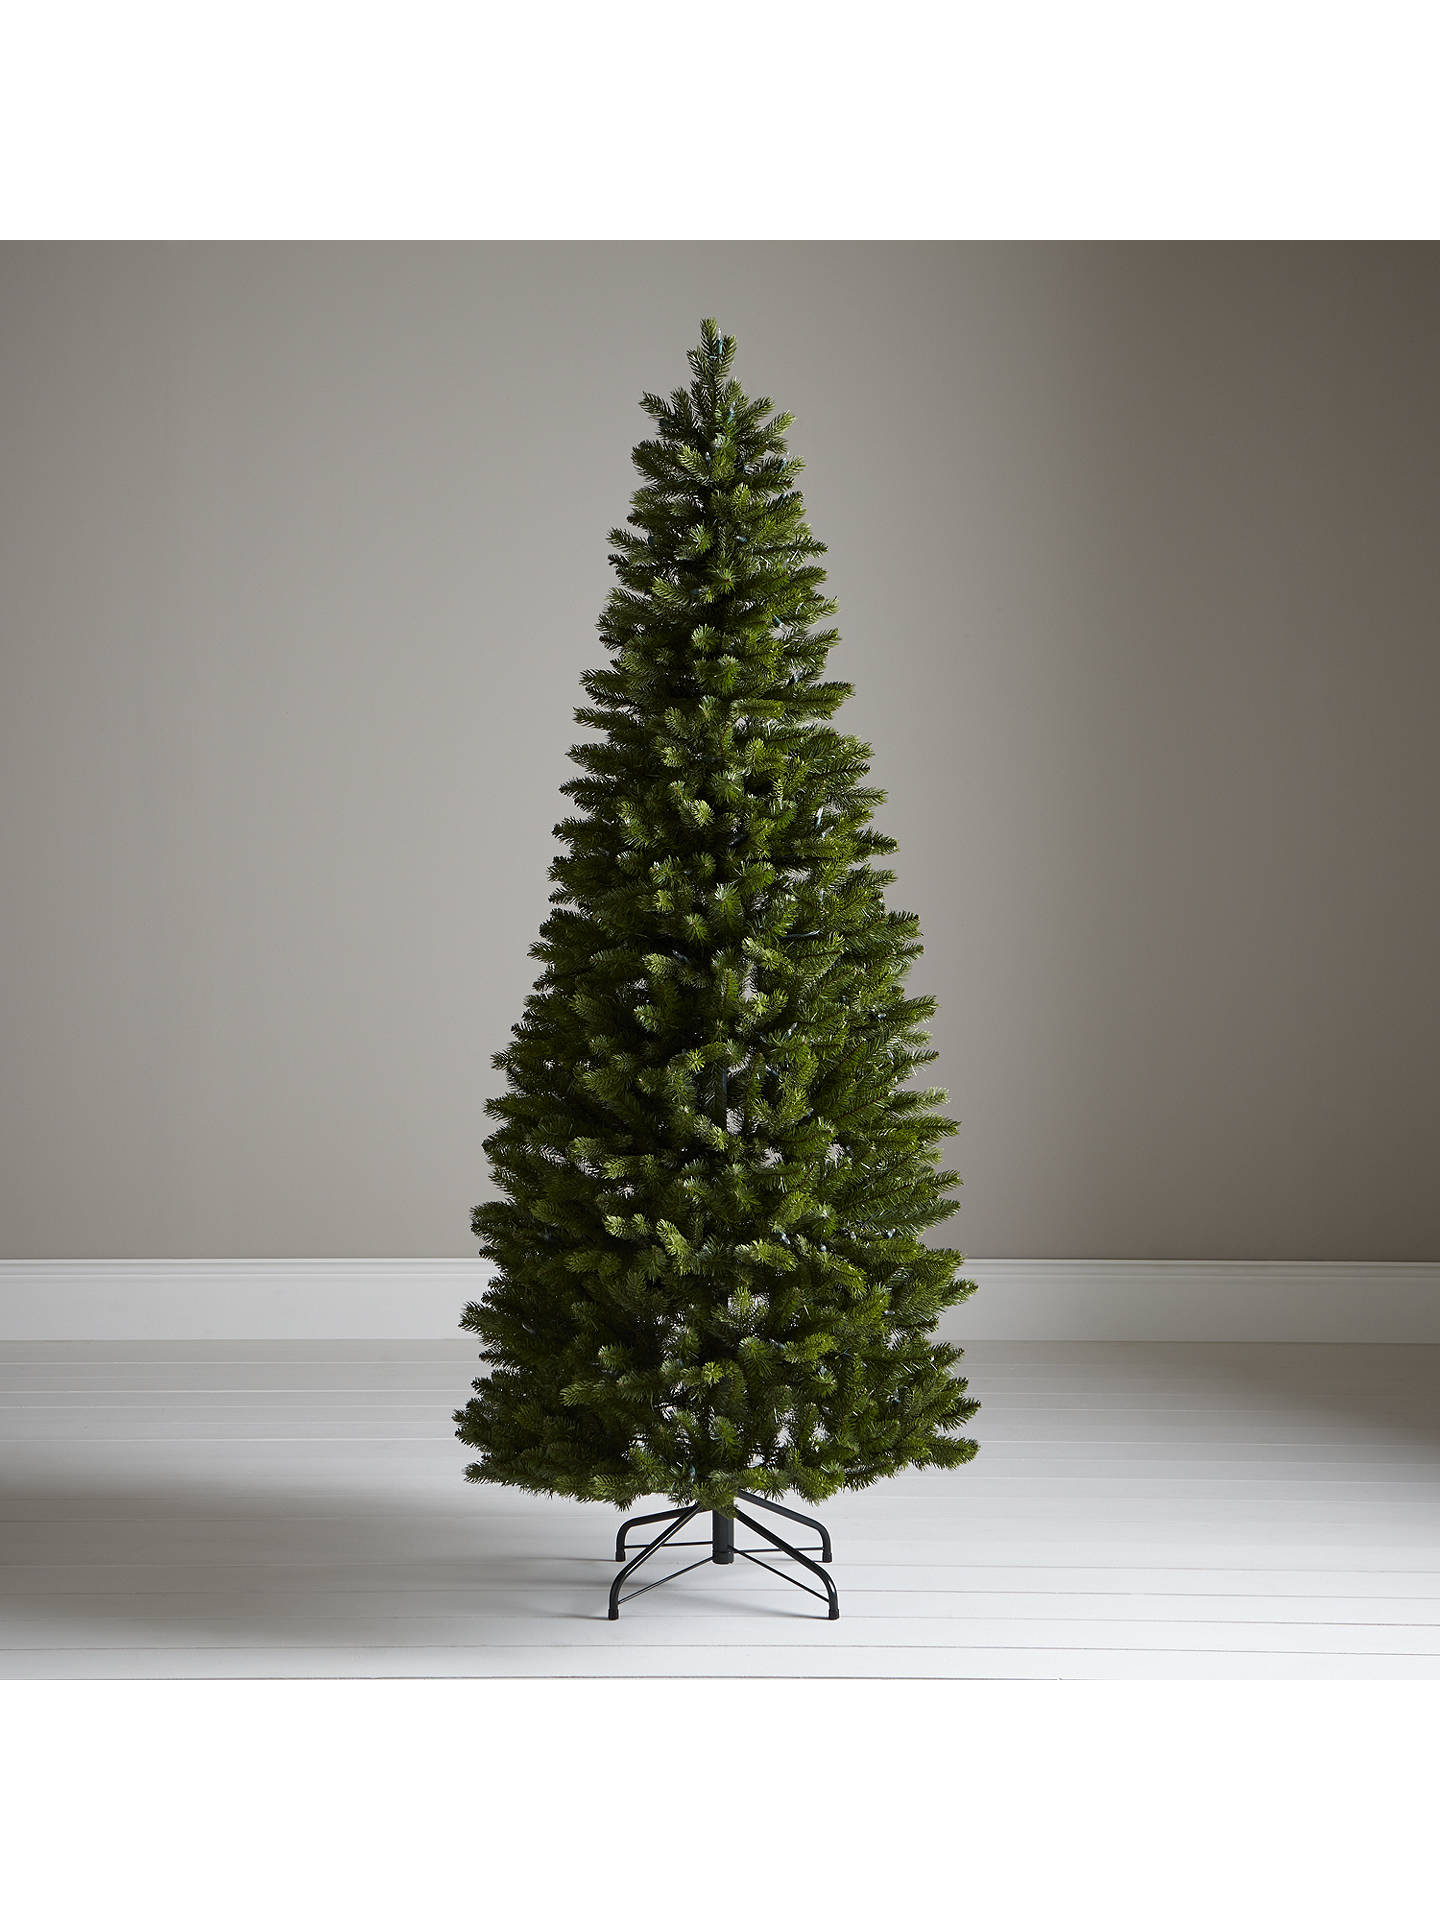 John Lewis Christmas Tree.John Lewis 6ft Pre Lit Pop Up Space Saver Christmas Tree At